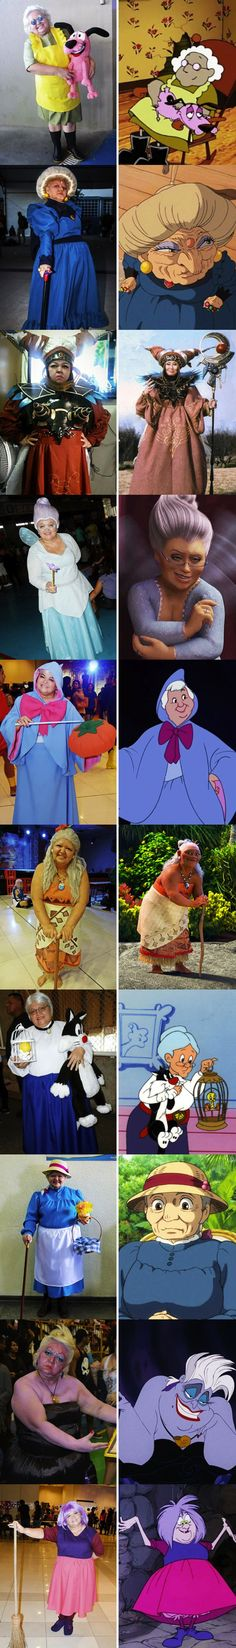 You are never too old for cosplay!